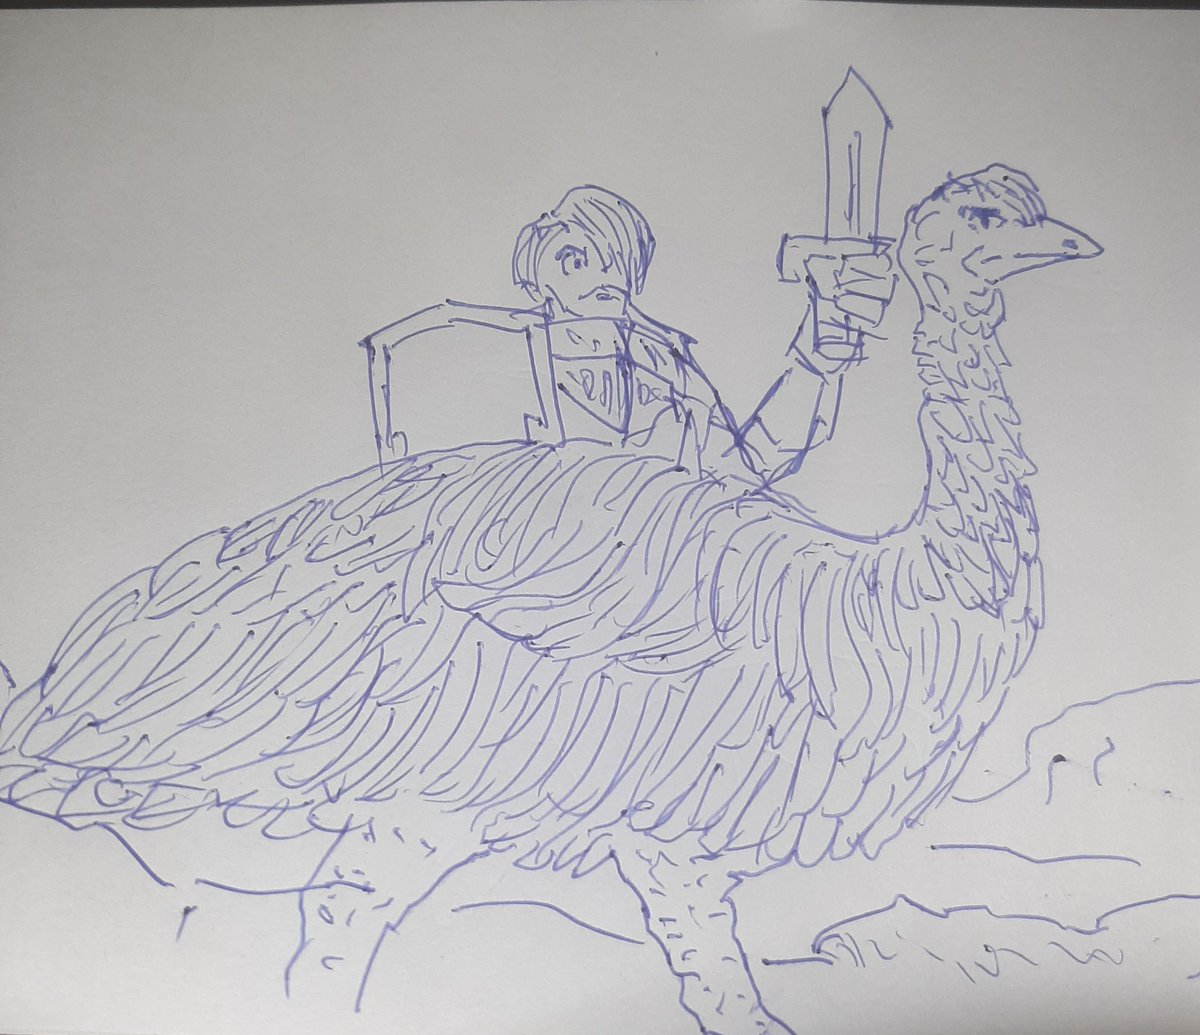 Emu Knight (IDK where the guy's lower body is) #sketchdaily 46/365